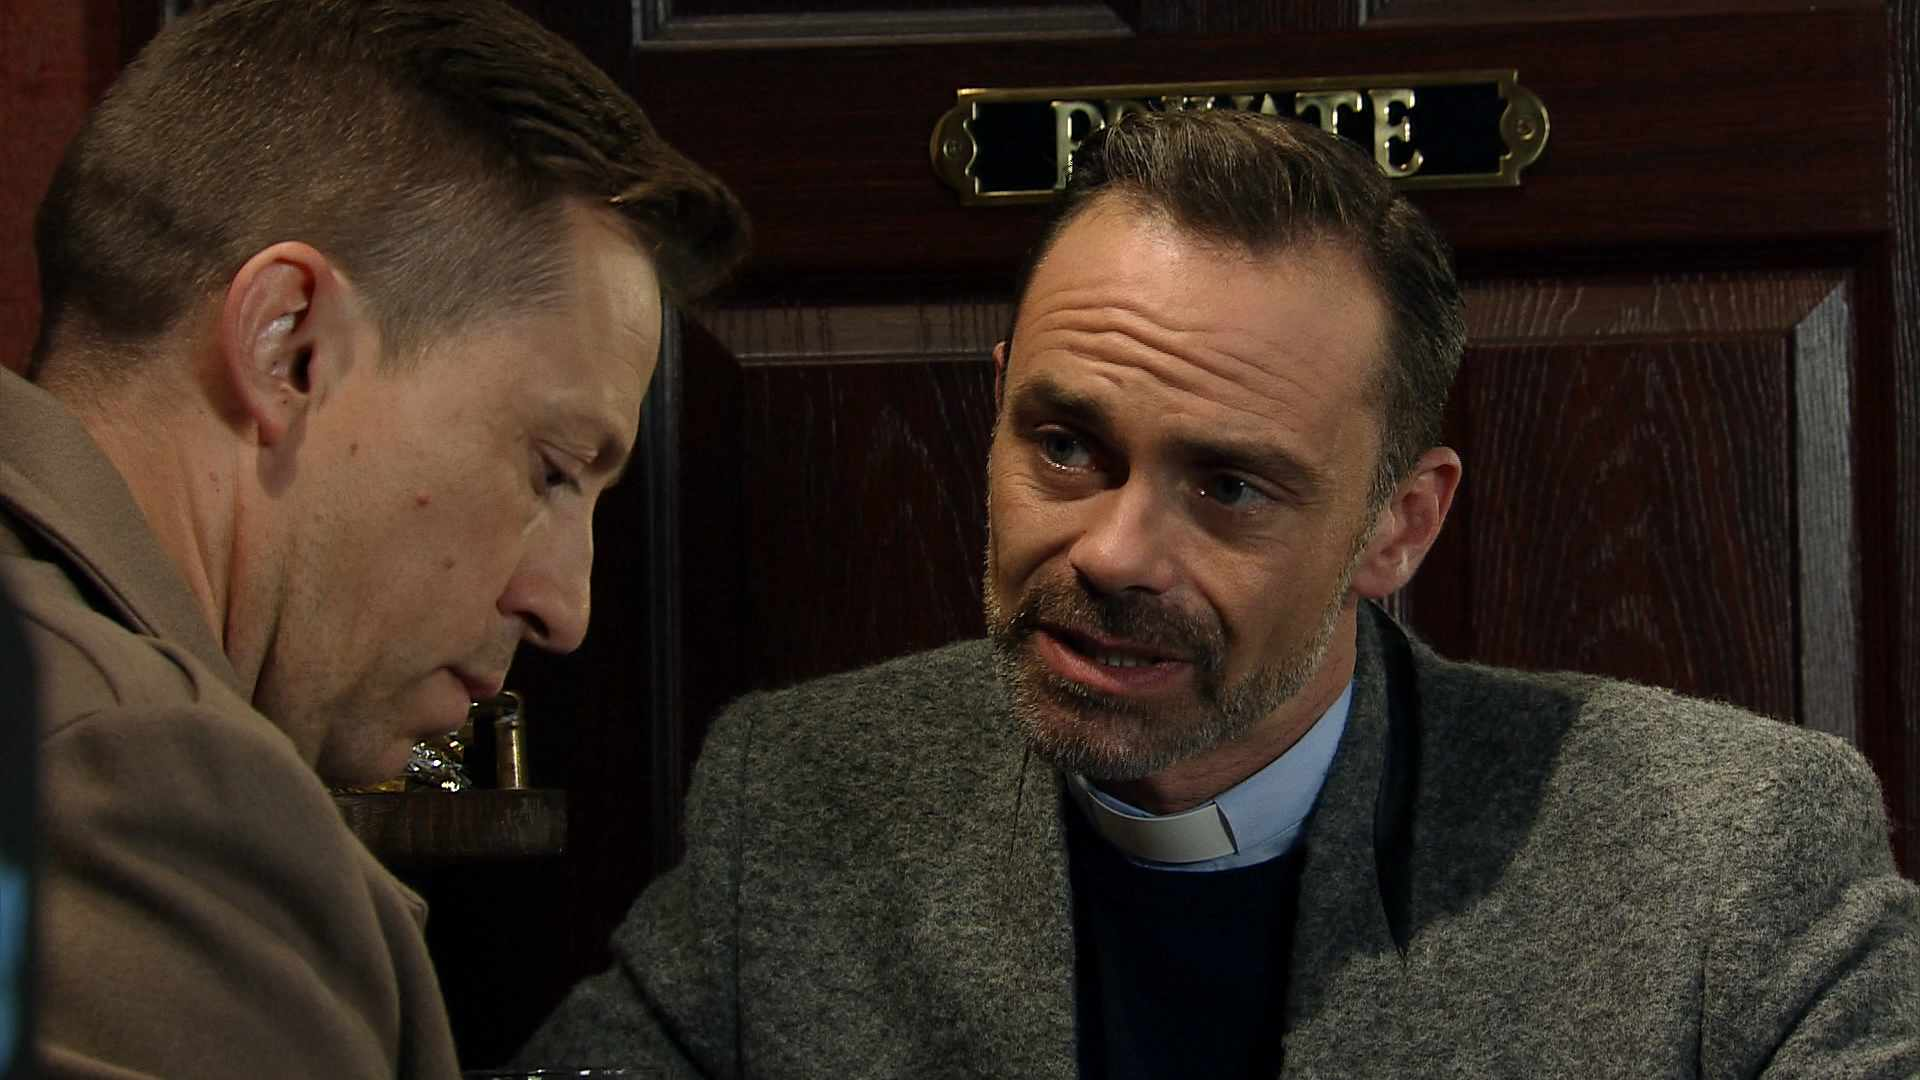 CORRIE 9313 WEDS 29TH NOV 2030 PREVIEW CLIP